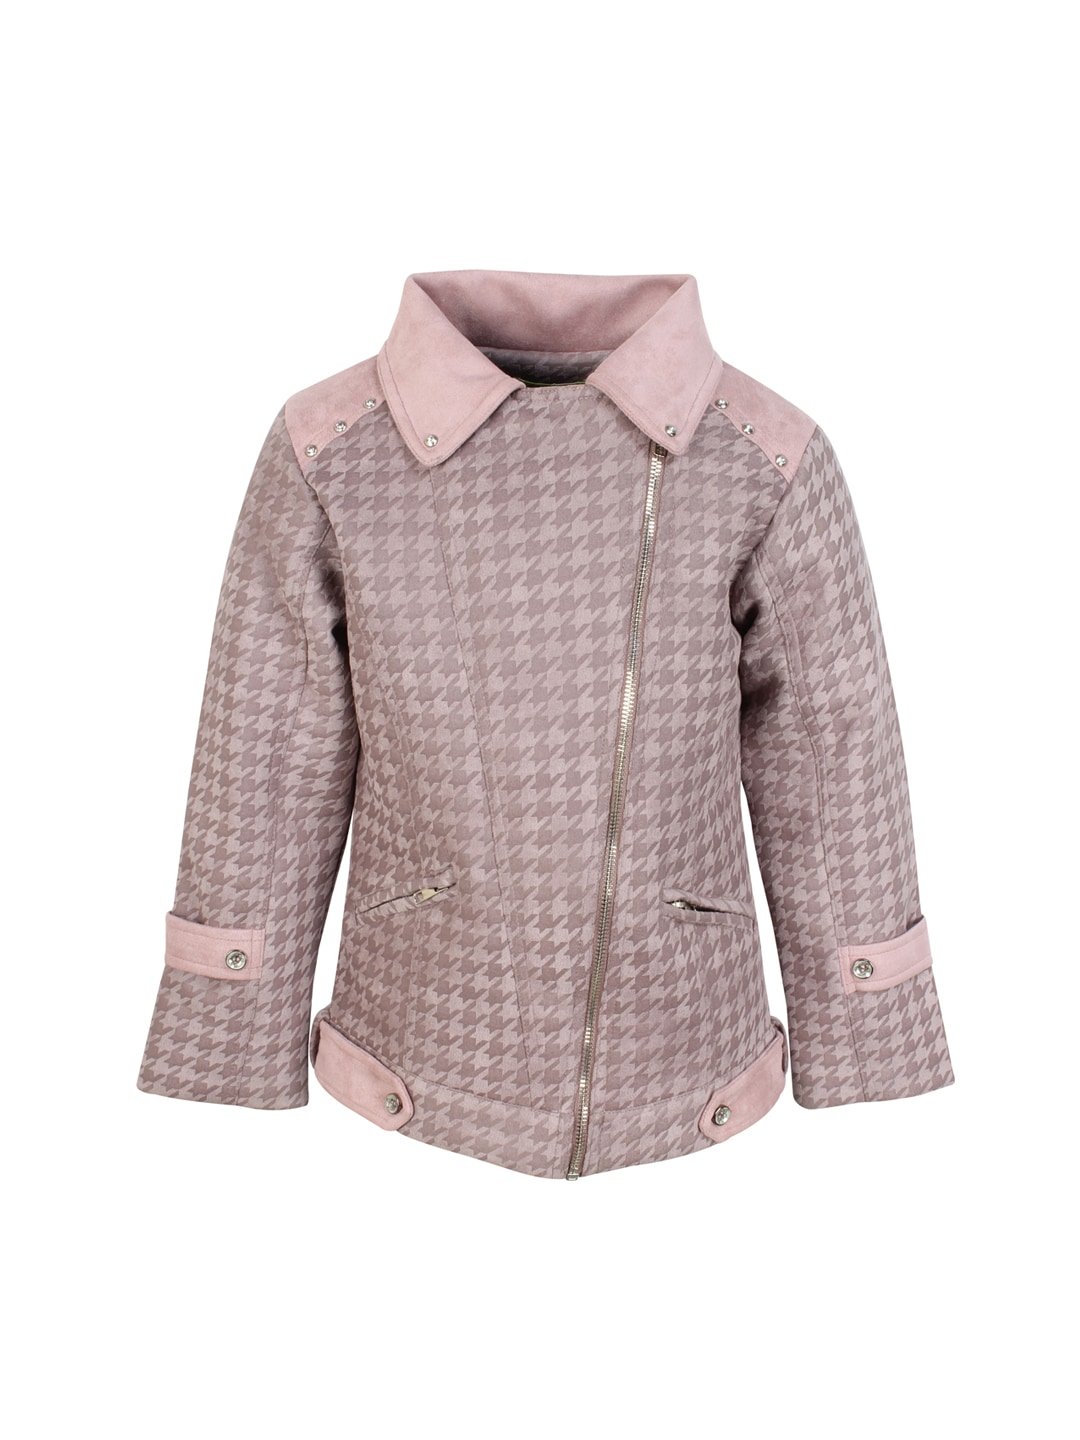 d8568a69e8c9 Girls Jackets Coats - Buy Girls Jackets Coats online in India